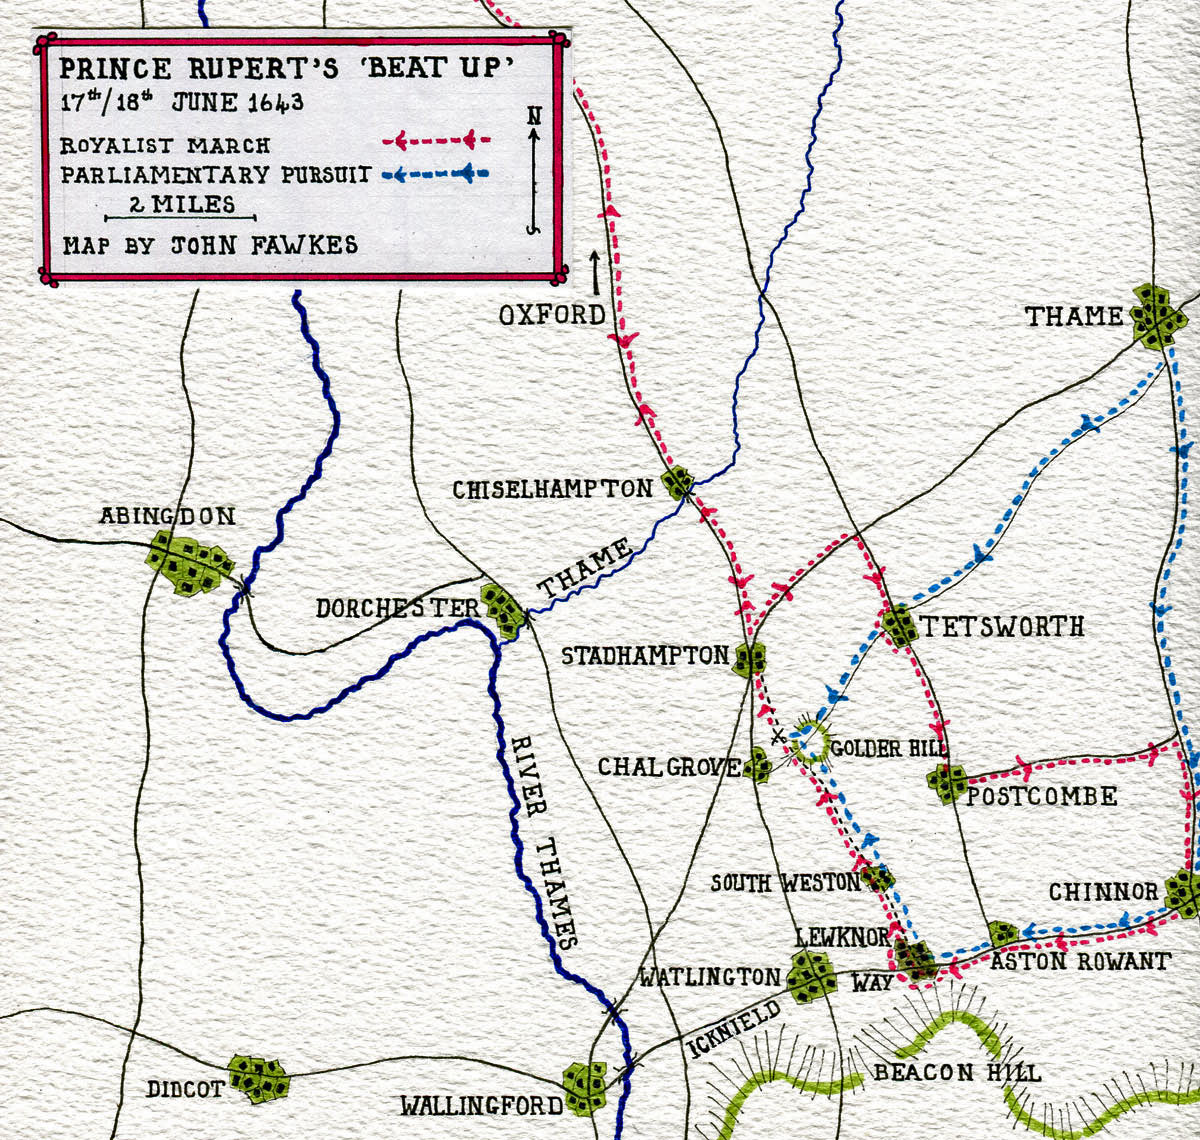 Map of Prince Rupert's march on 17th and 18th June 1643: Battle of Chalgrove 18th June 1643 in the English Civil War: map by John Fawkes